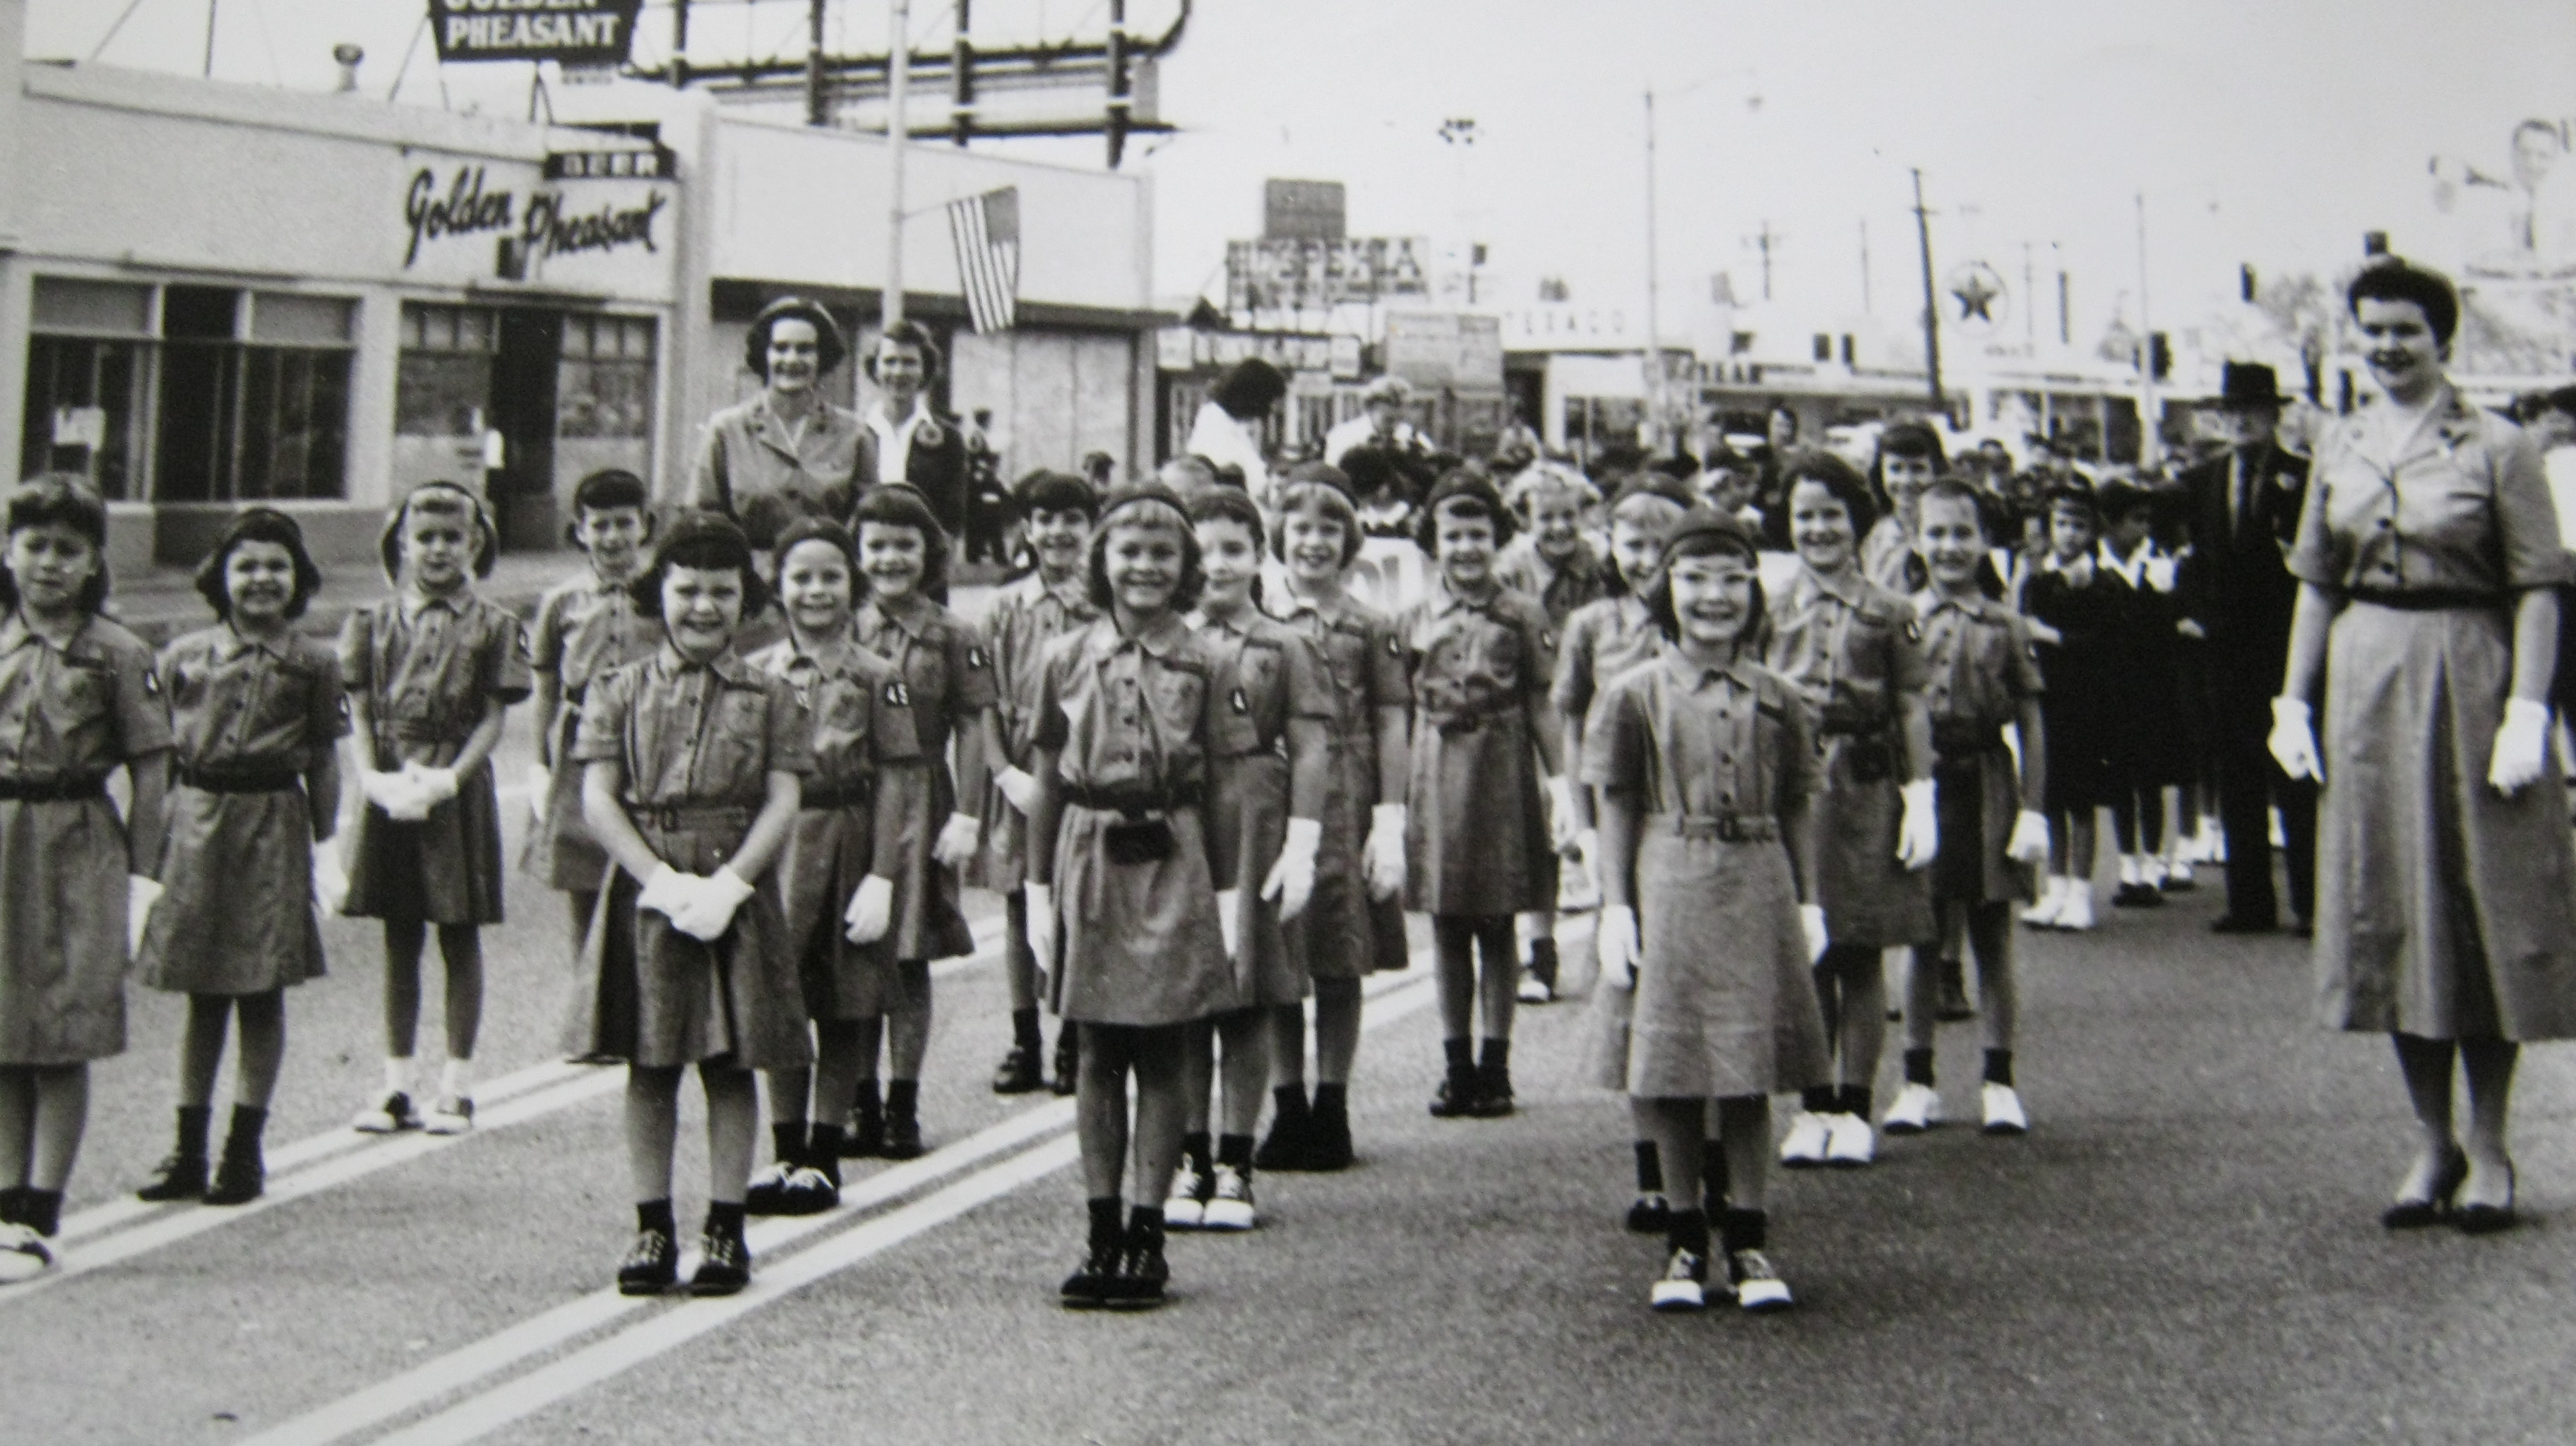 Debbie and Edith as Brownies marching in the parade, circa 1961.